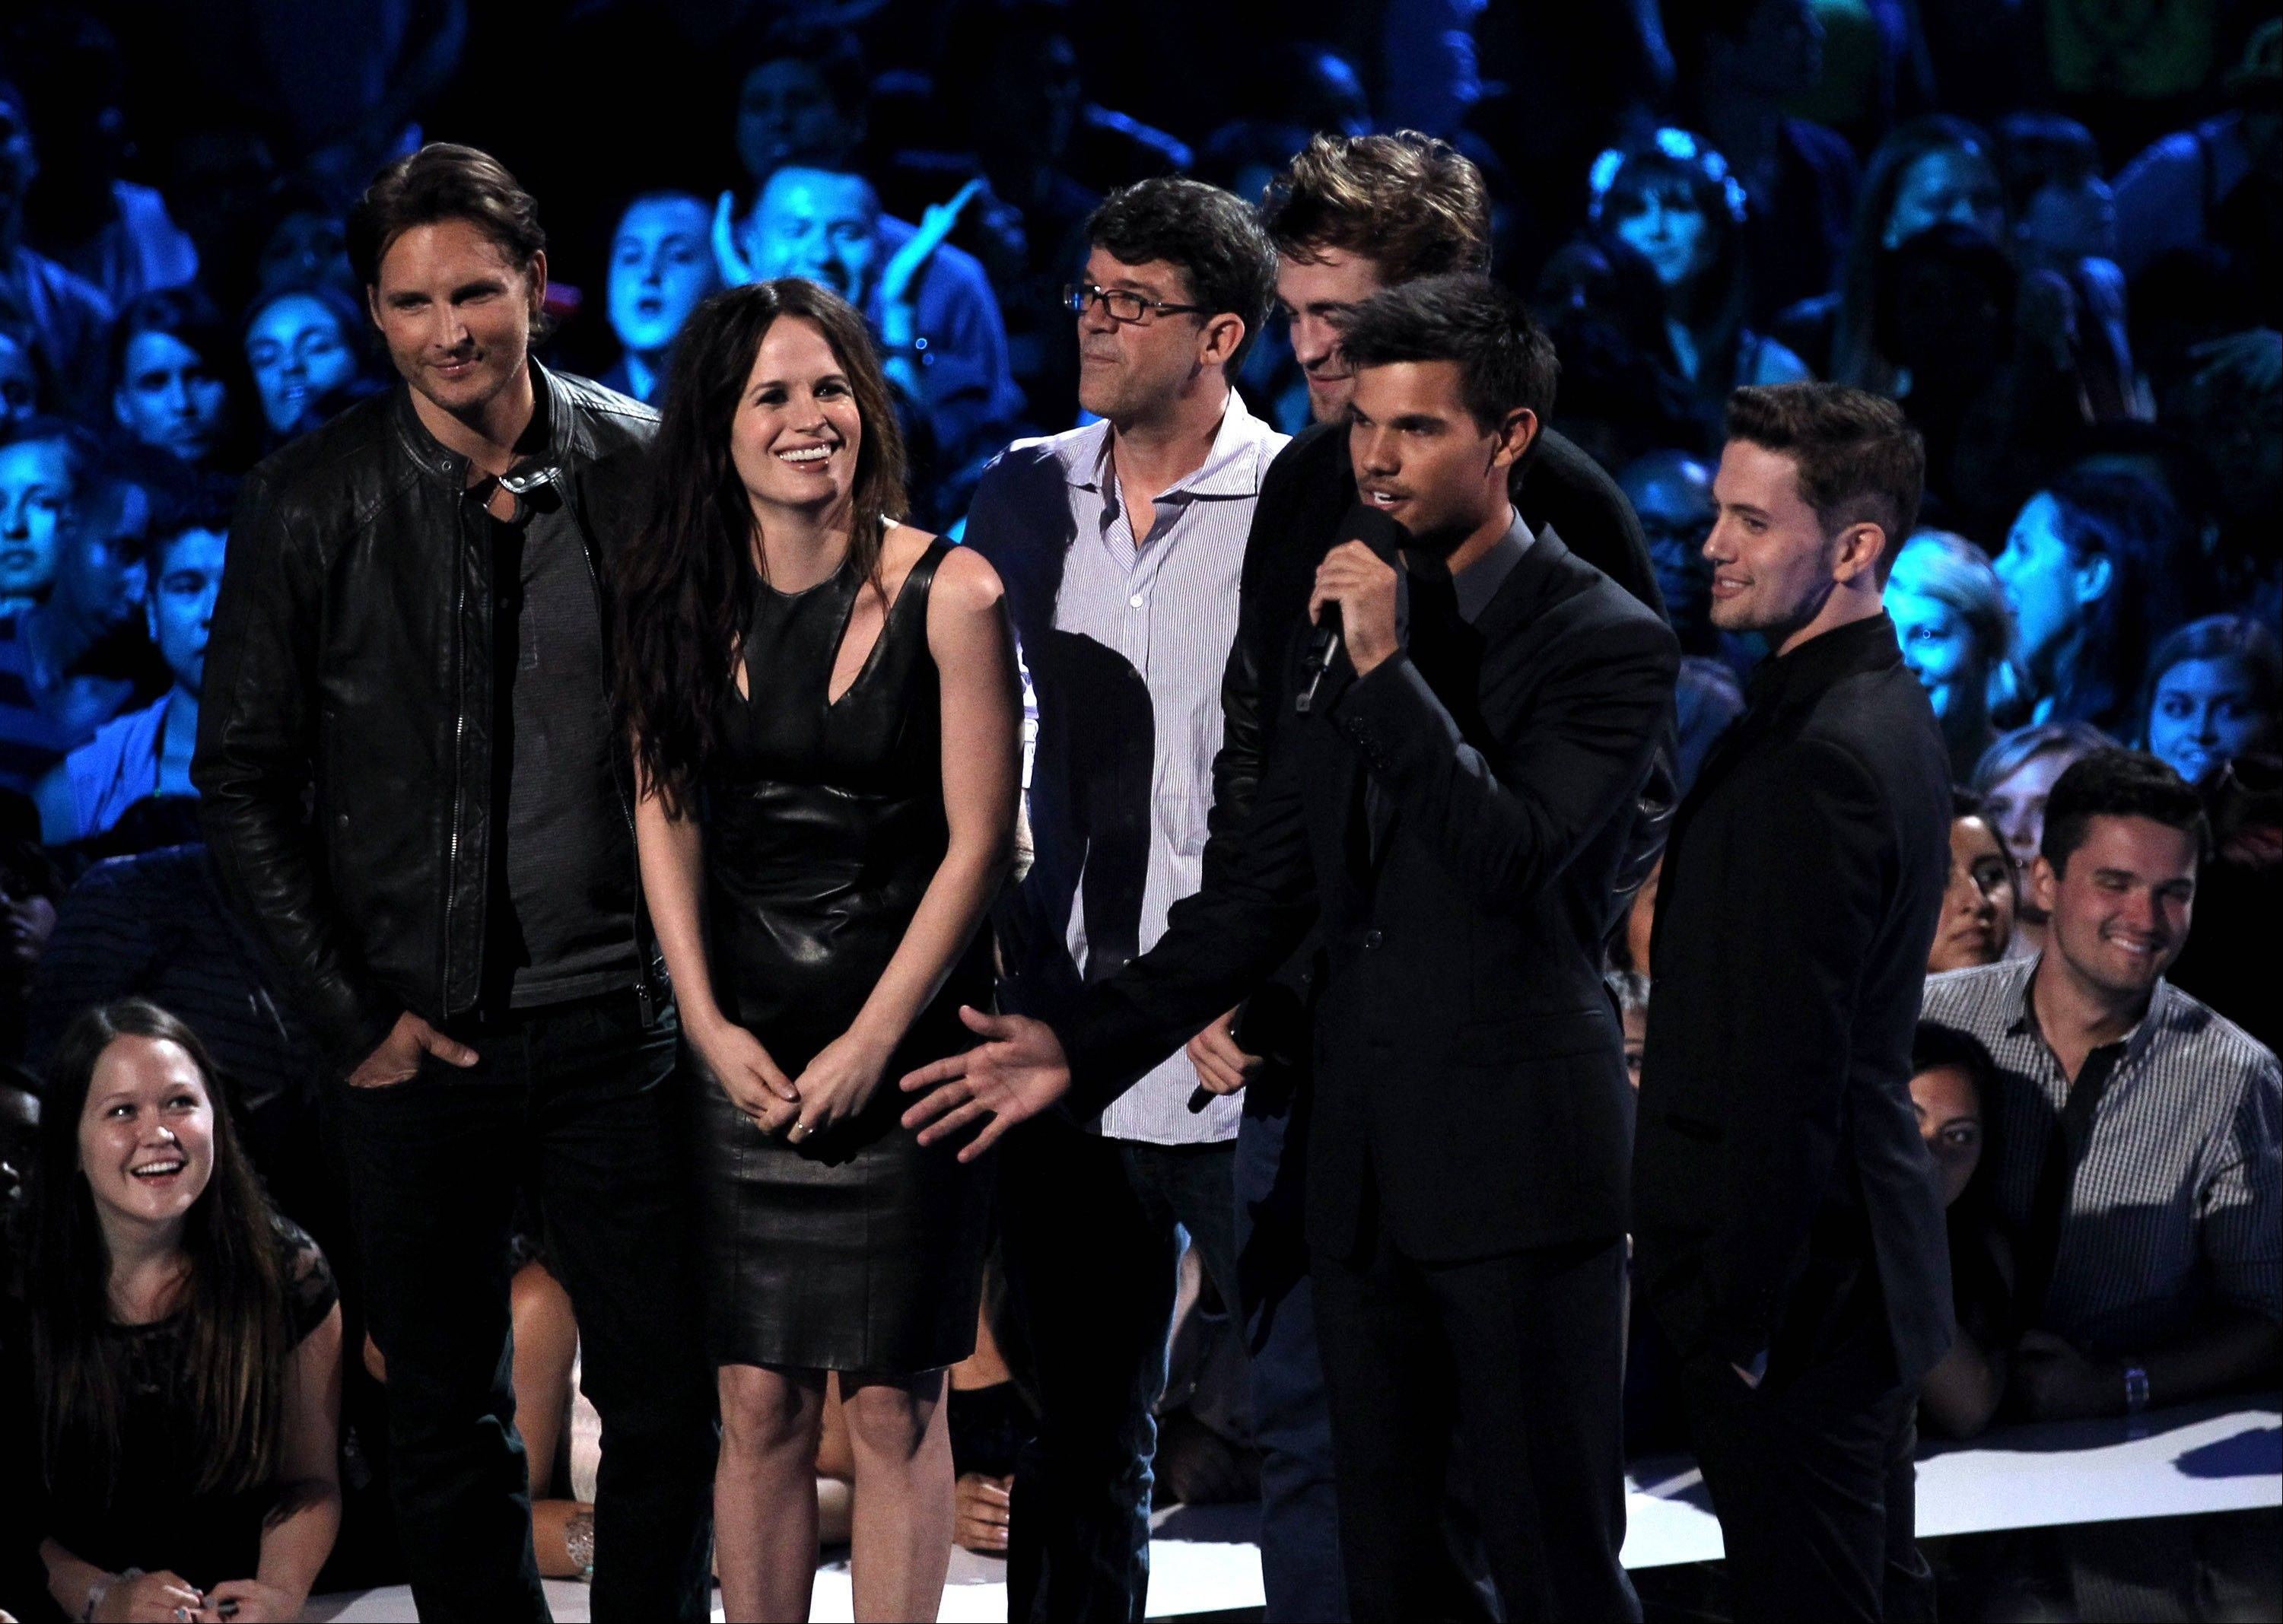 From left, Peter Facinelli, Elizabeth Reaser, Wyck Godfrey, Robert Pattinson, Taylor Lautner and Jackson Rathbone speak onstage at the MTV Video Music Awards on Thursday, Sept. 6, 2012, in Los Angeles.